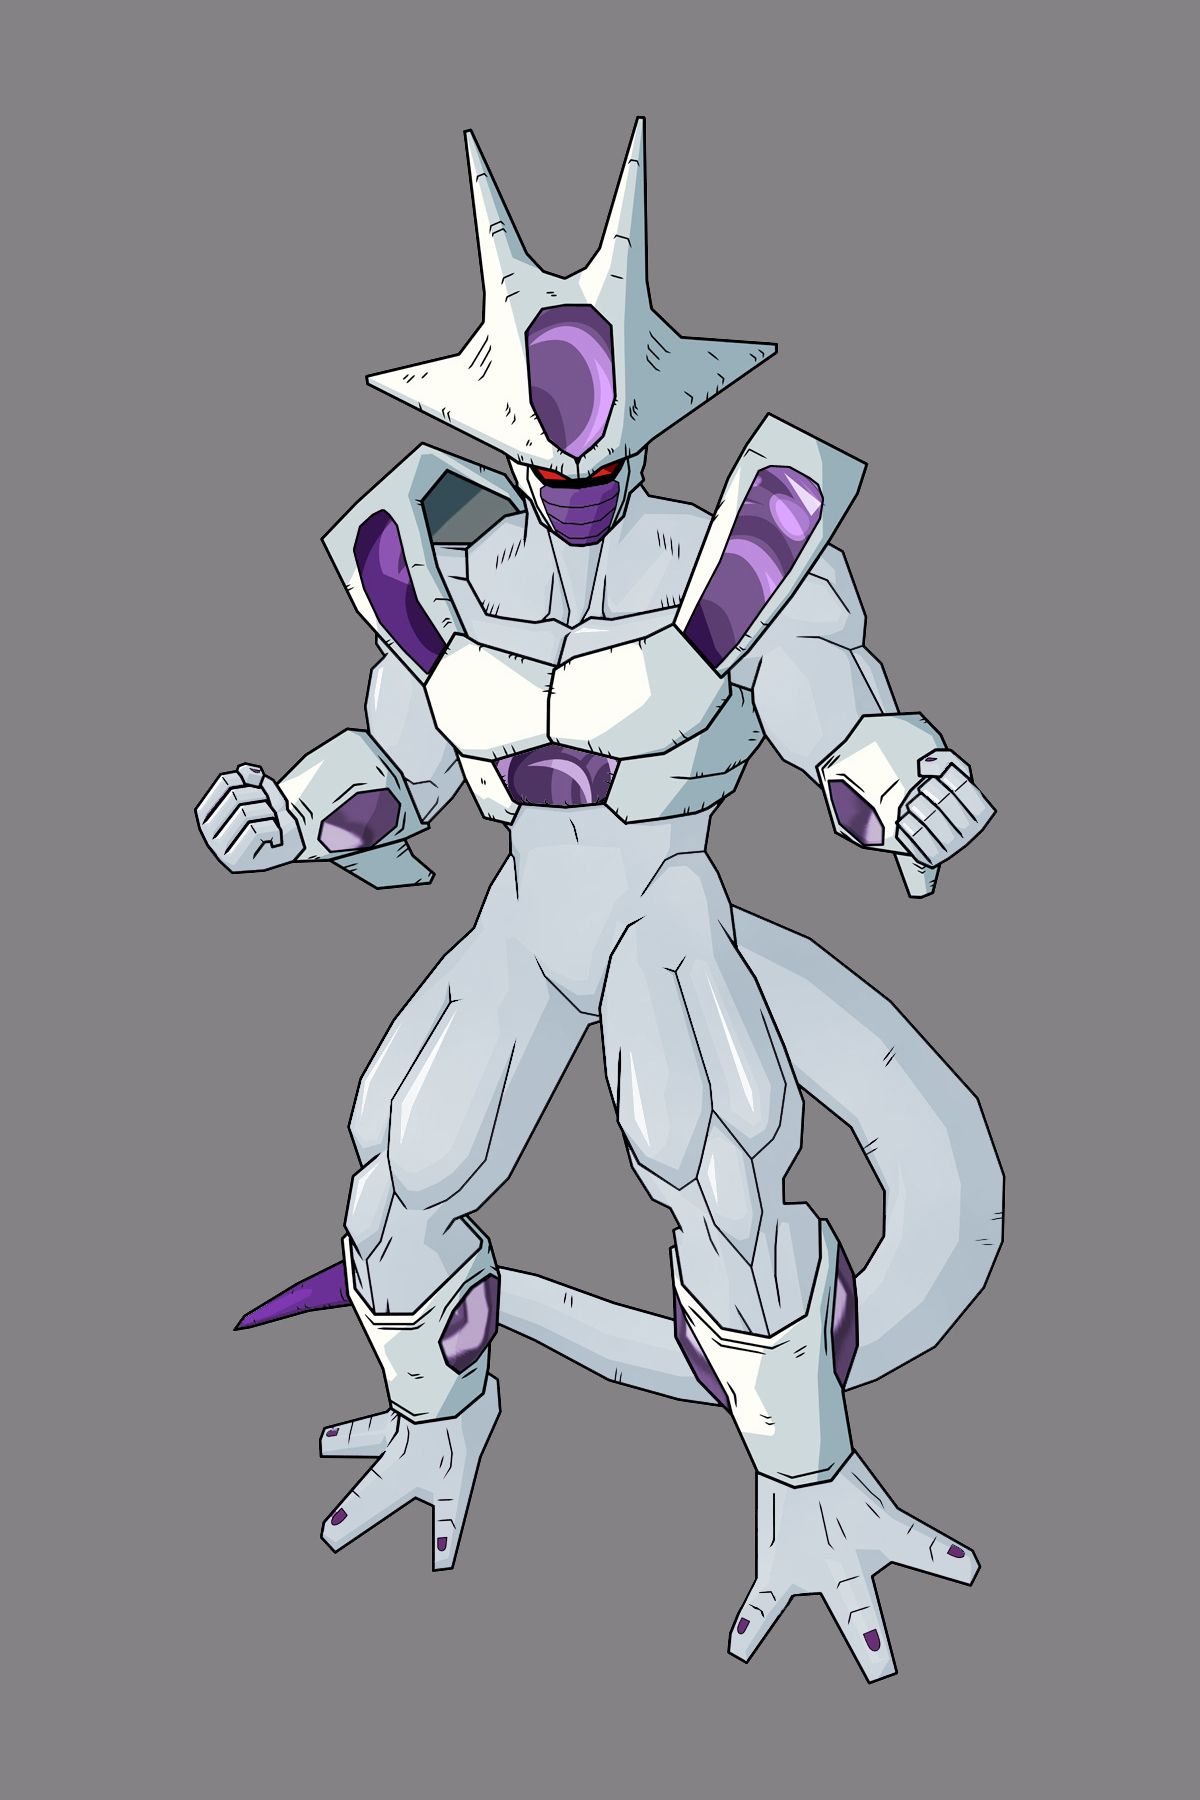 Frieza_5th_Form.jpg